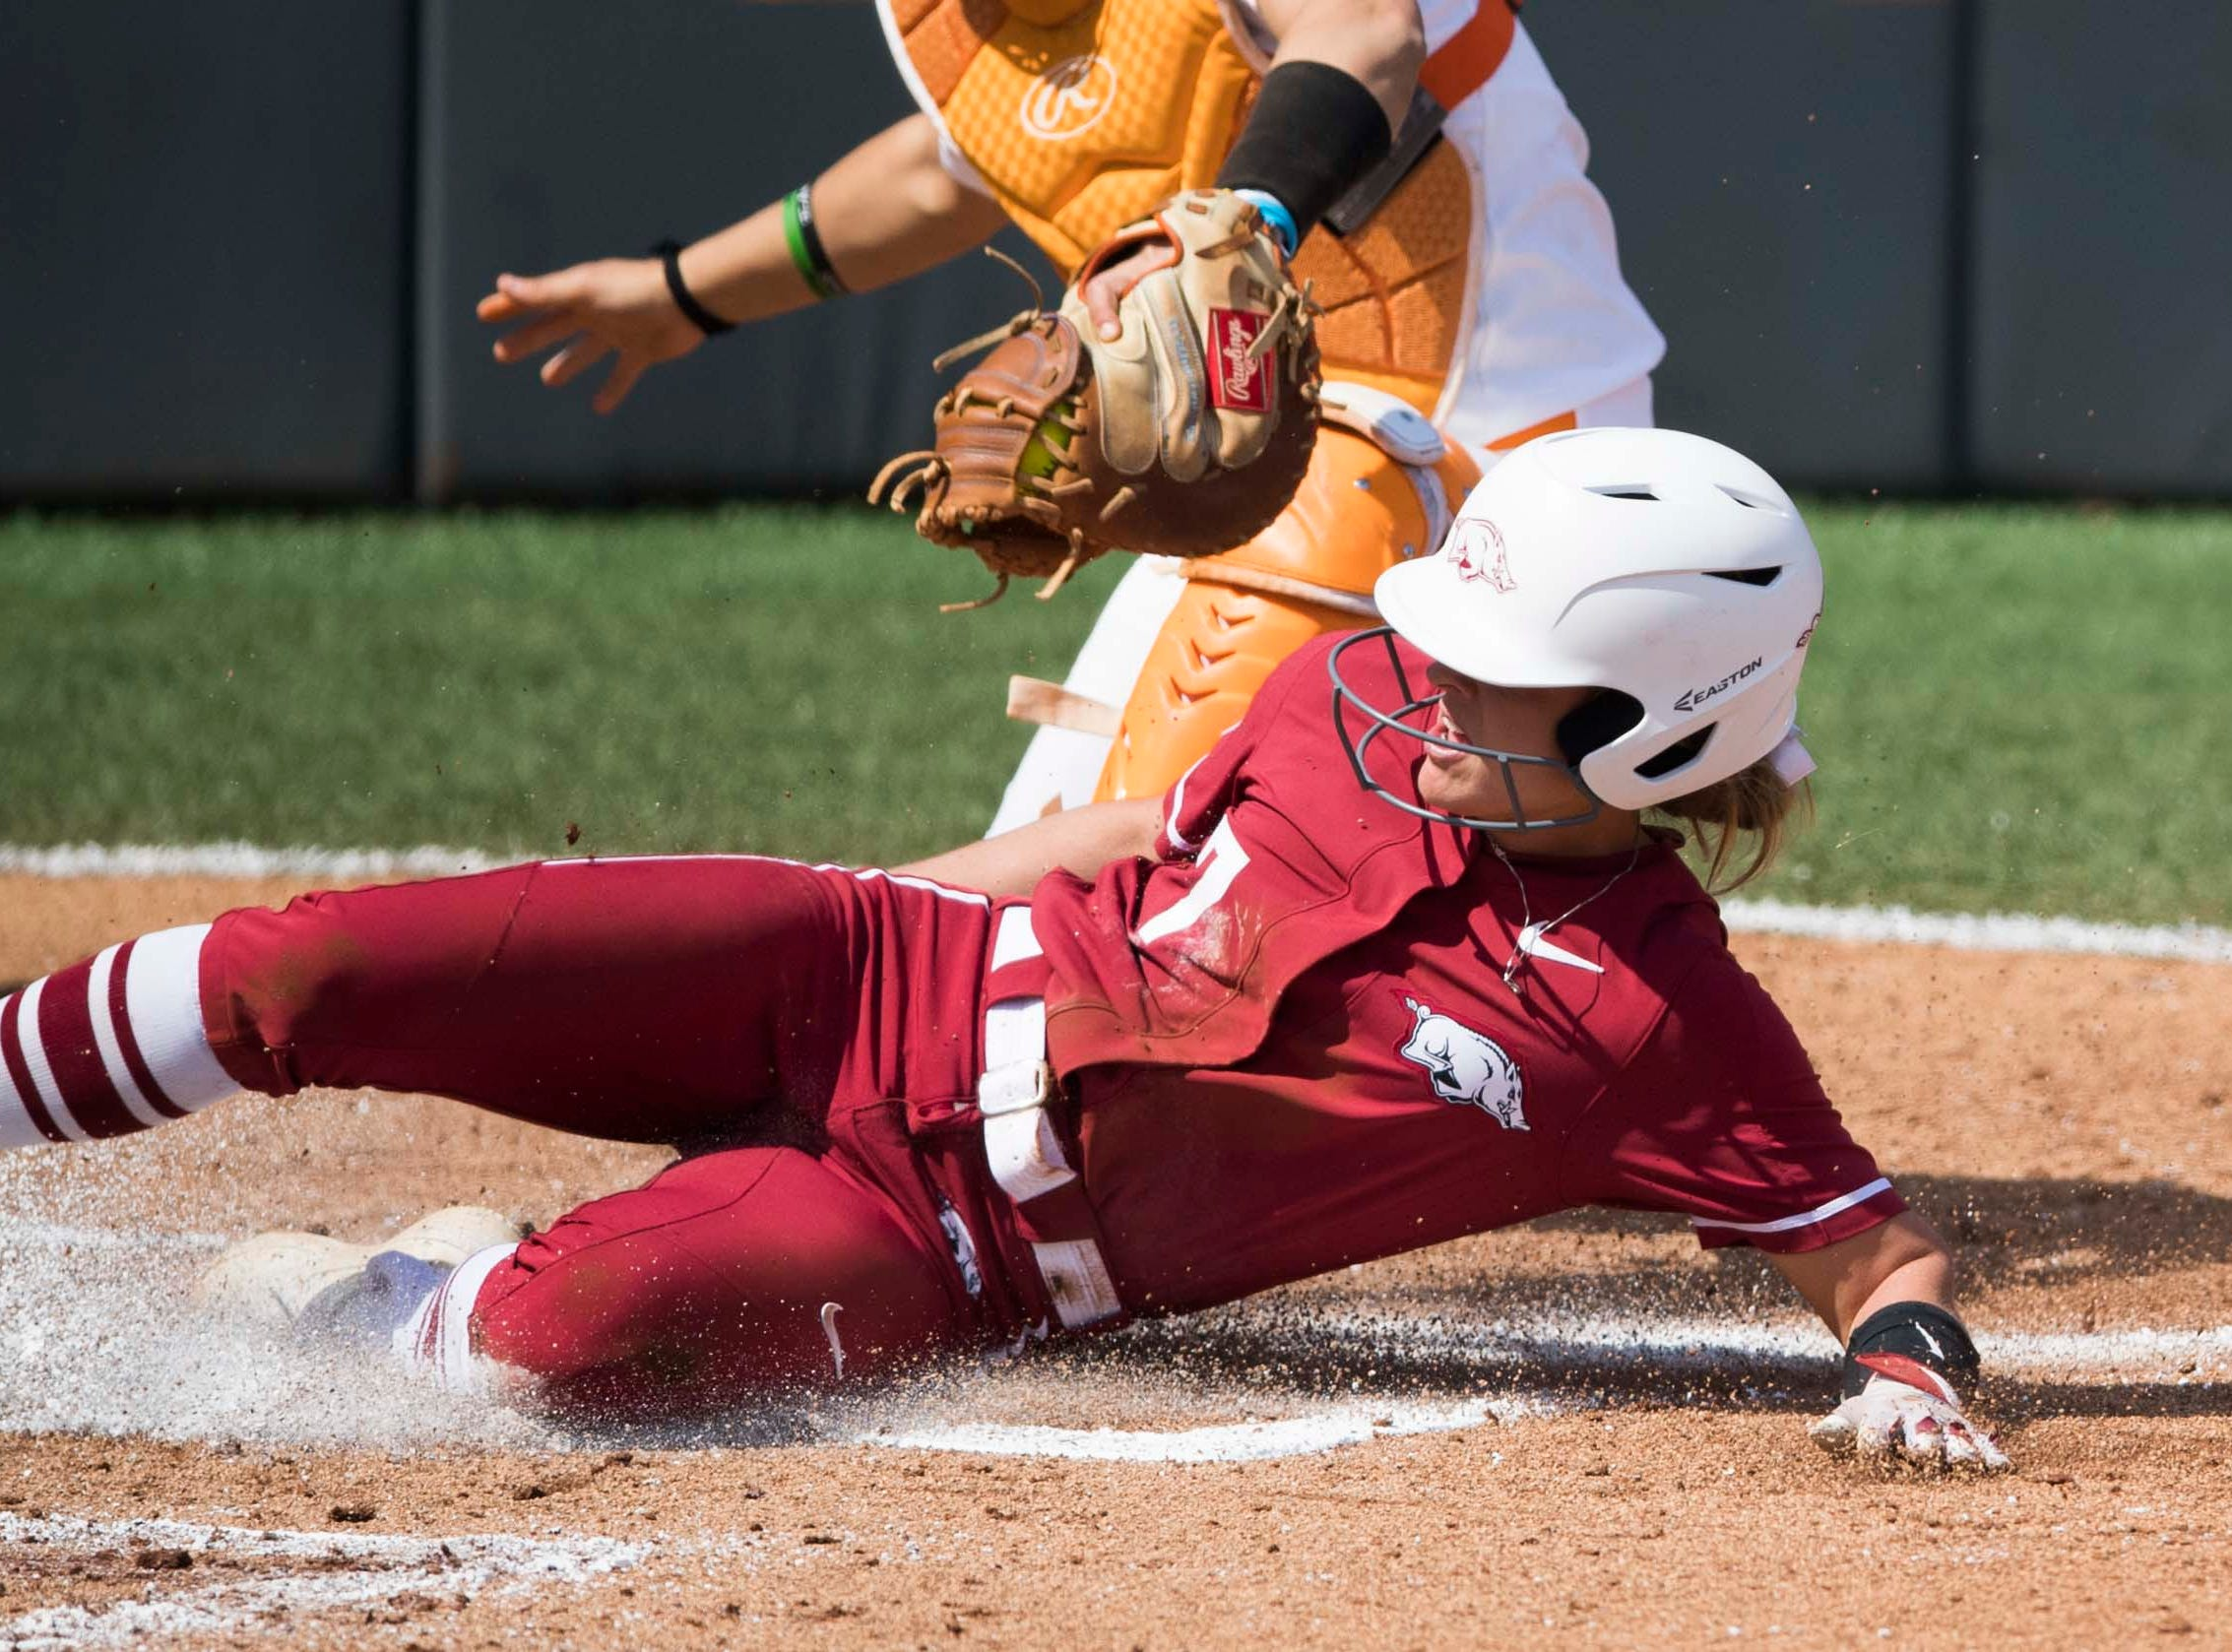 Arkansas' Sydney Parr (7) slides home safely during a Lady Vols softball game against Arkansas at Sherri Parker Lee stadium on University of Tennessee's campus in Knoxville Sunday, March 24, 2019. The Lady Vols defeated Arkansas.